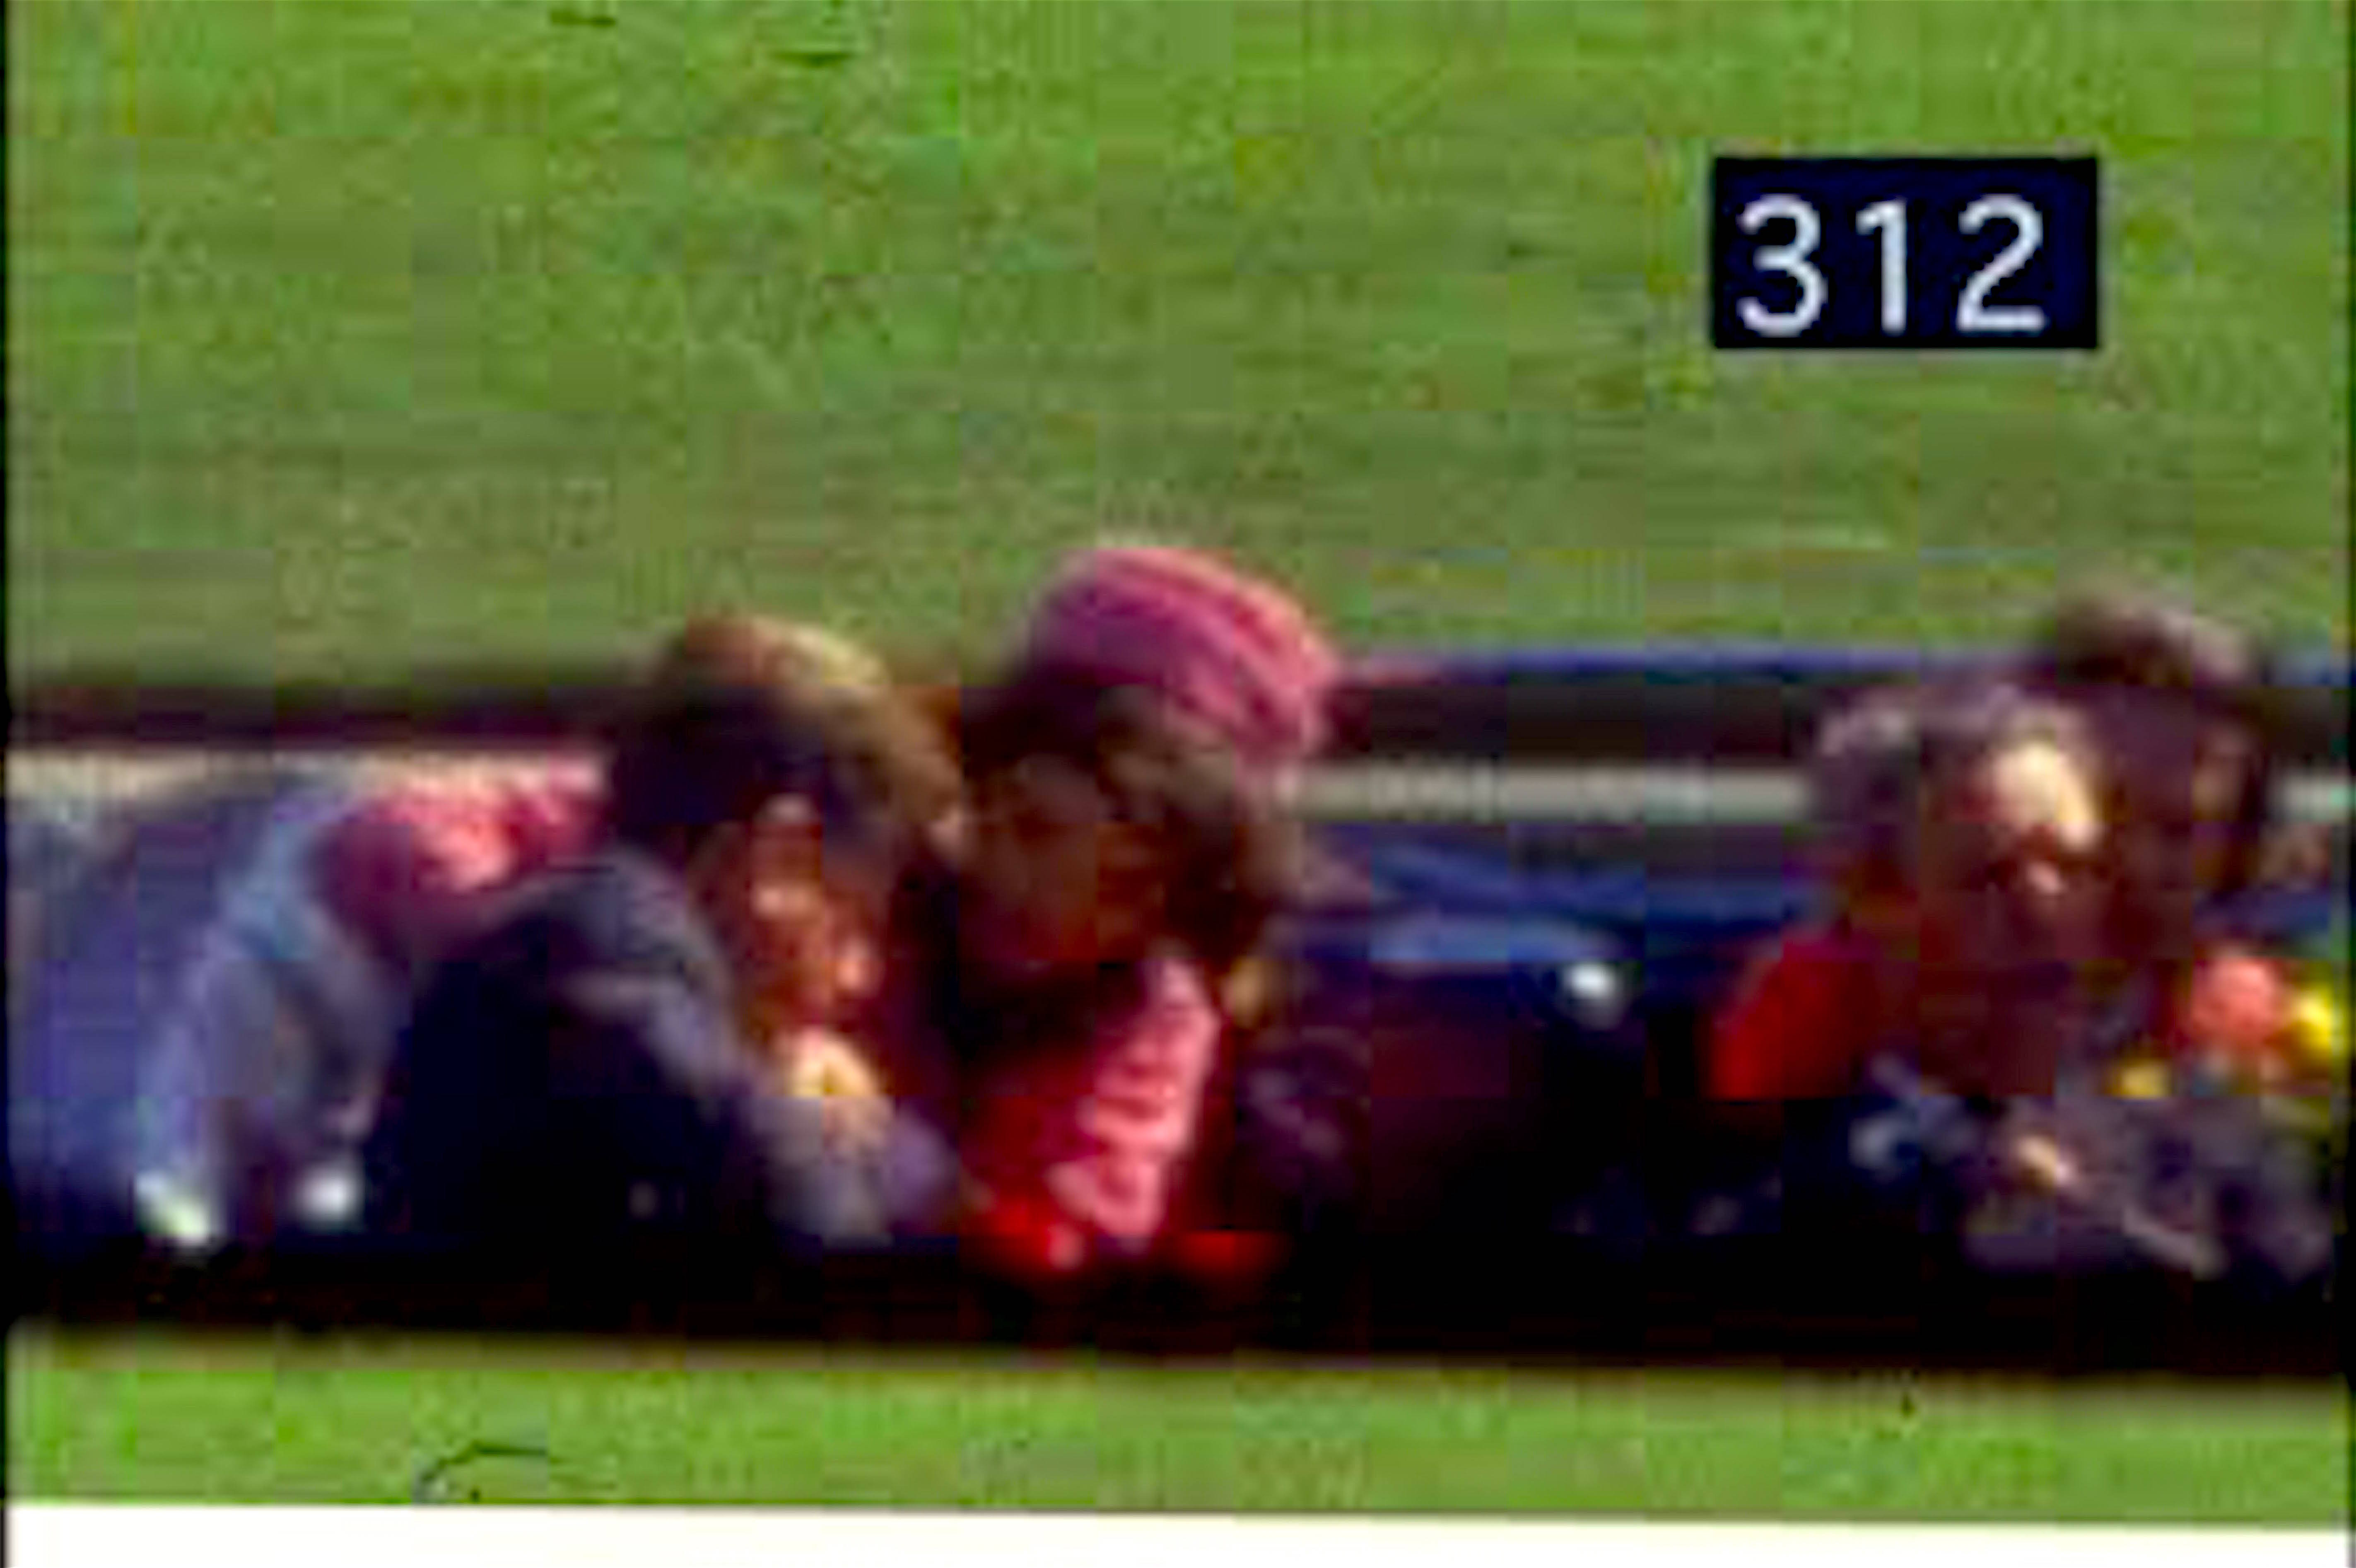 Finian Cunningham – See the Zapruder movie of JFK's assassination in